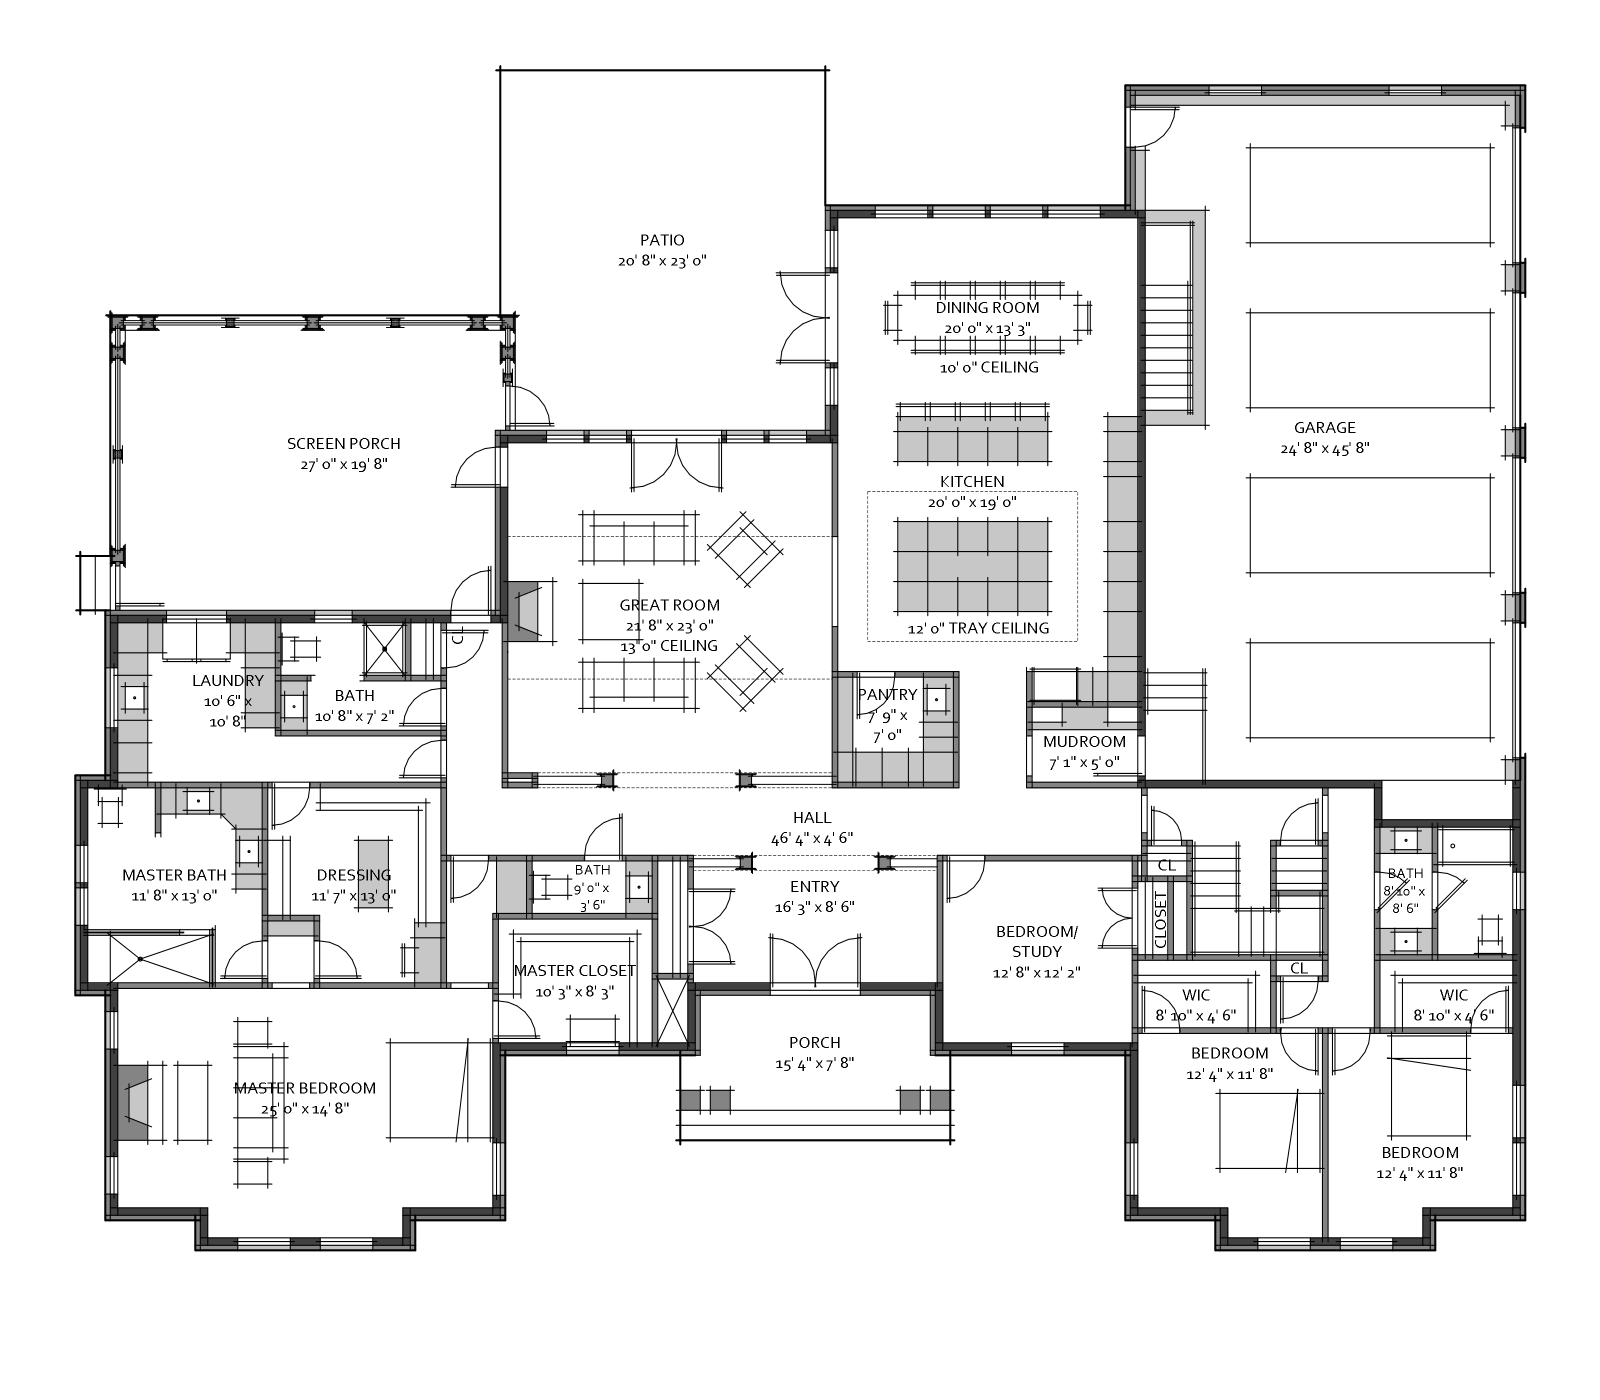 sunroom floor plans best of sunroom floor plans house floor ideas 15088